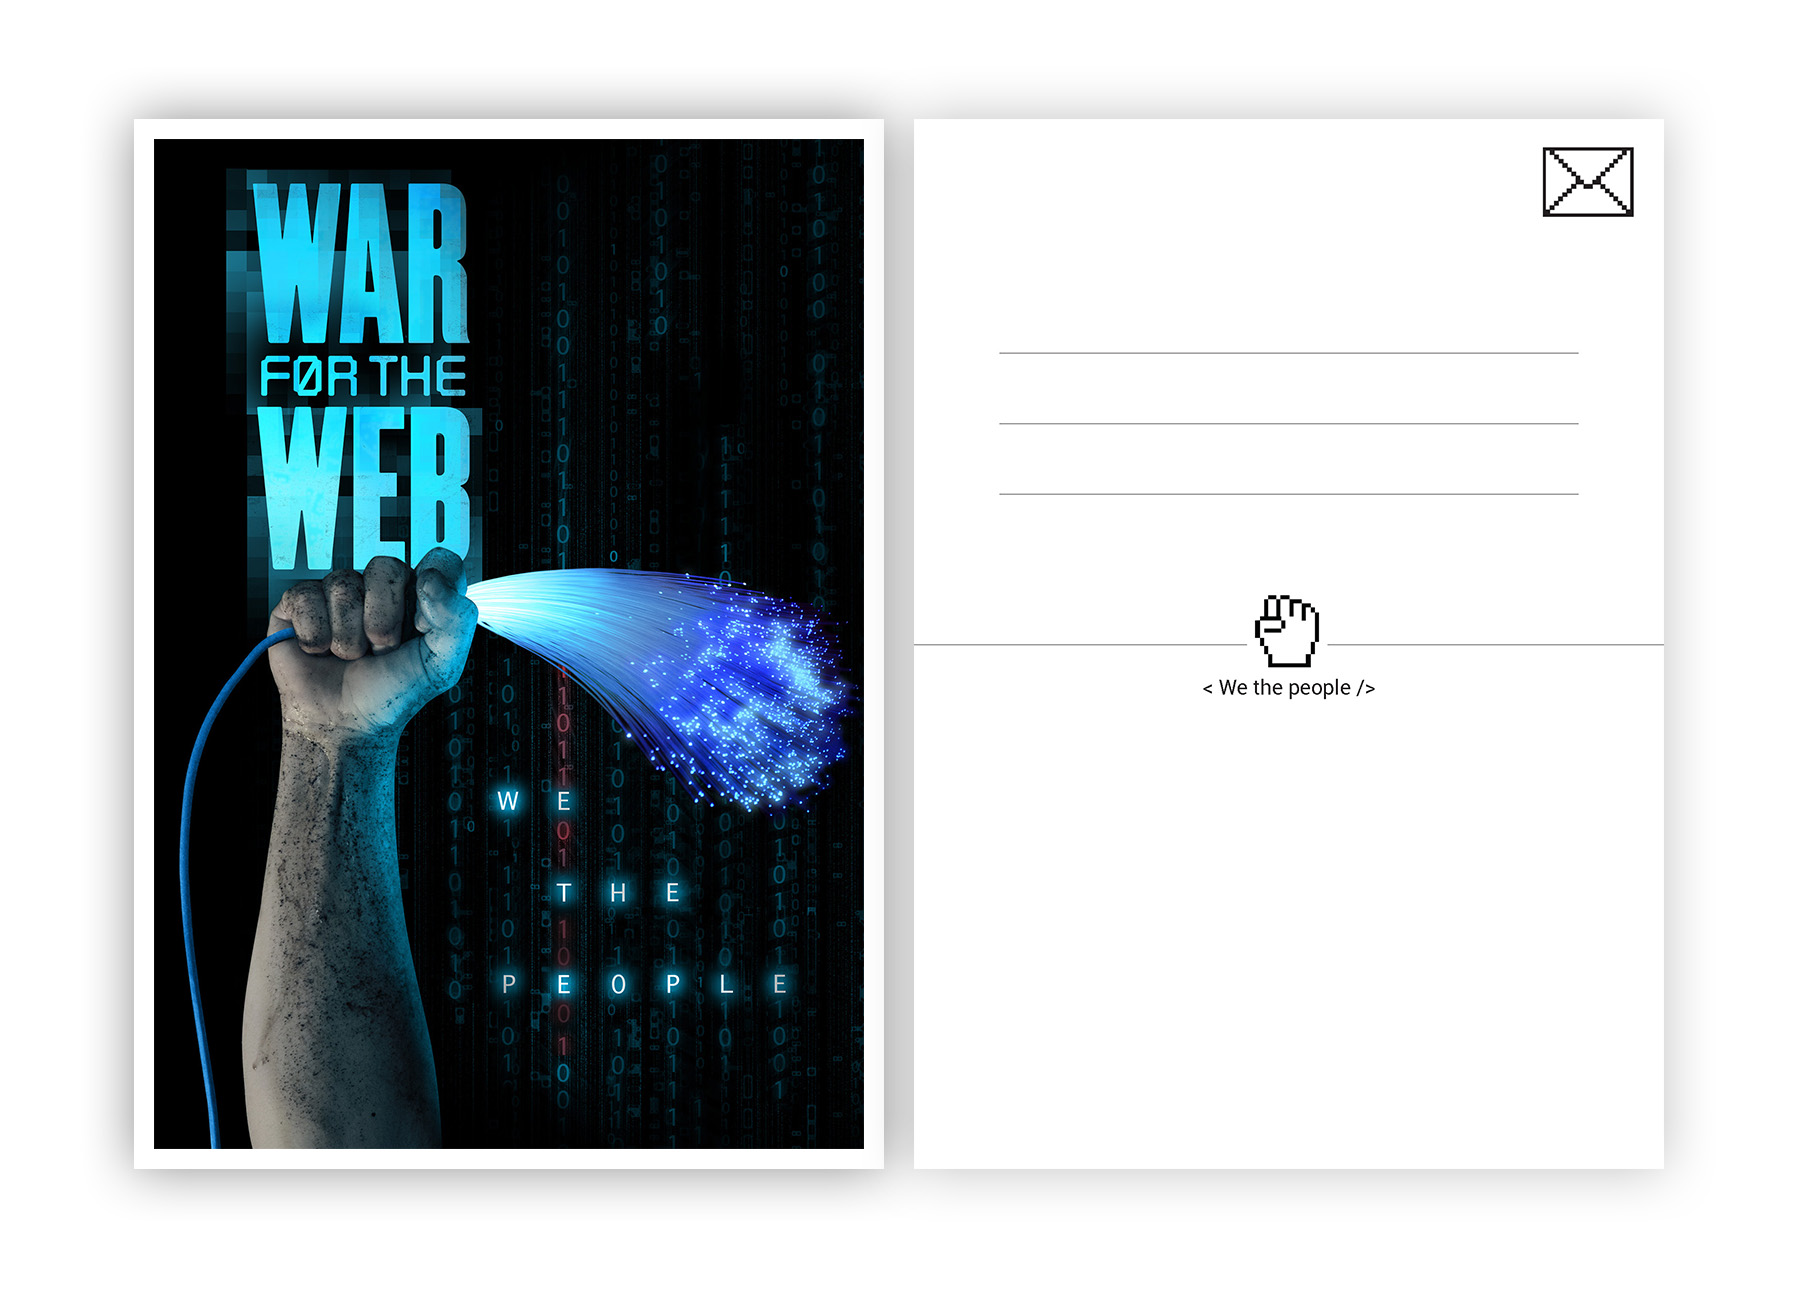 War_for_the_Web_postcard.jpg